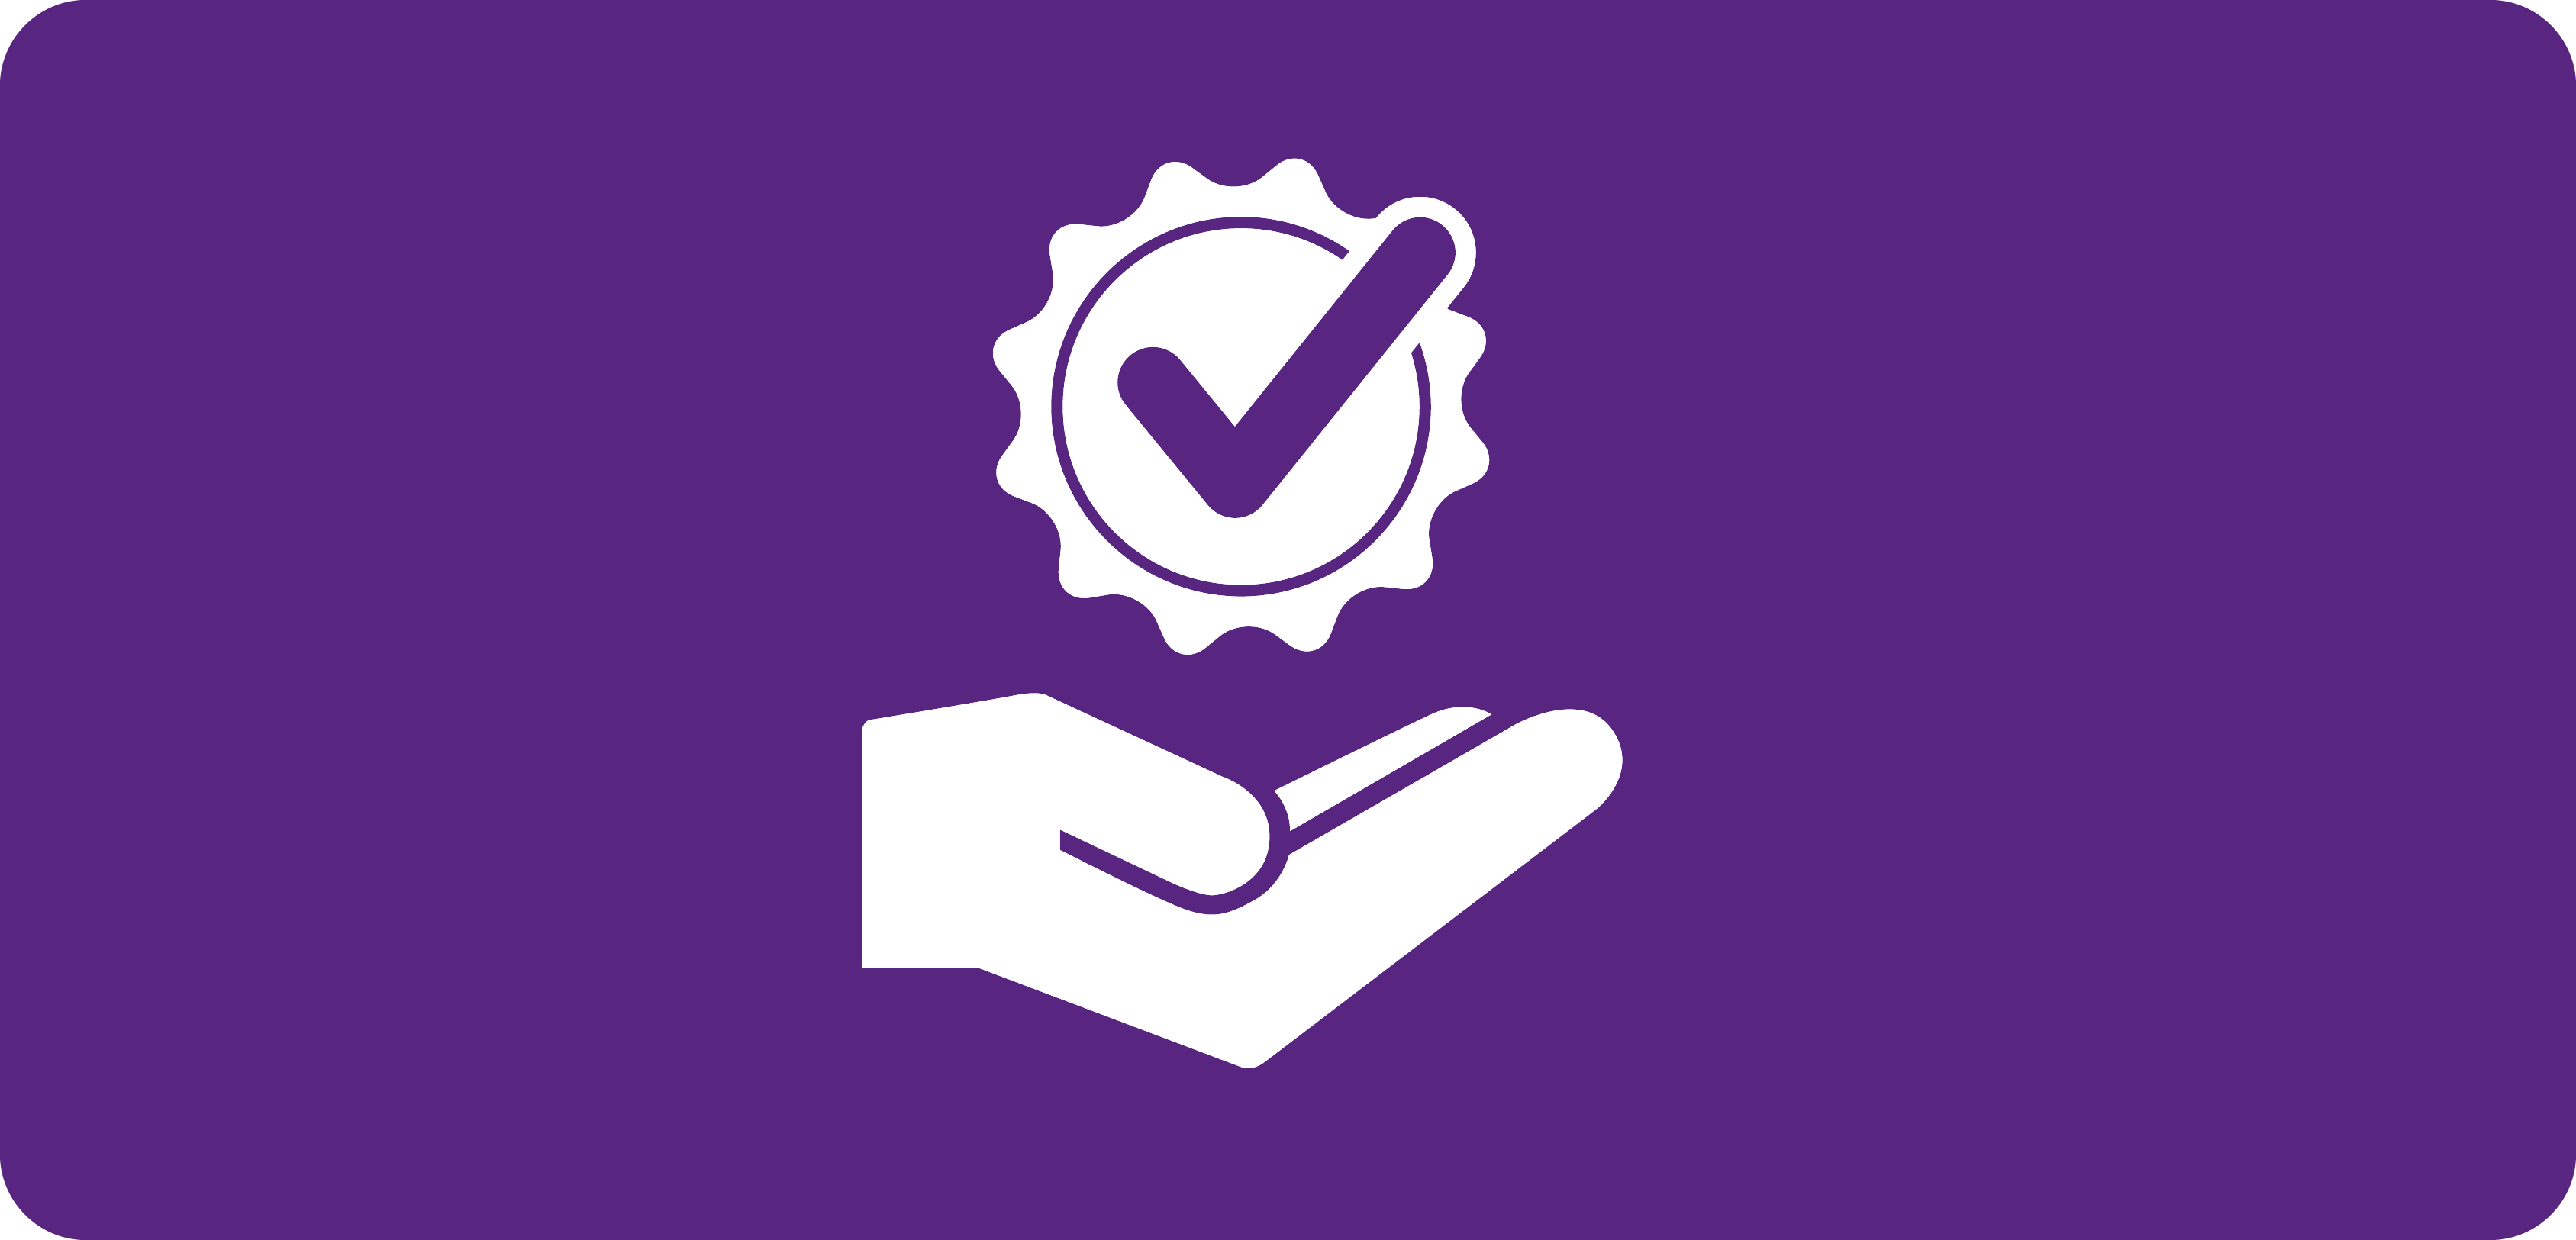 White award icon on purple background